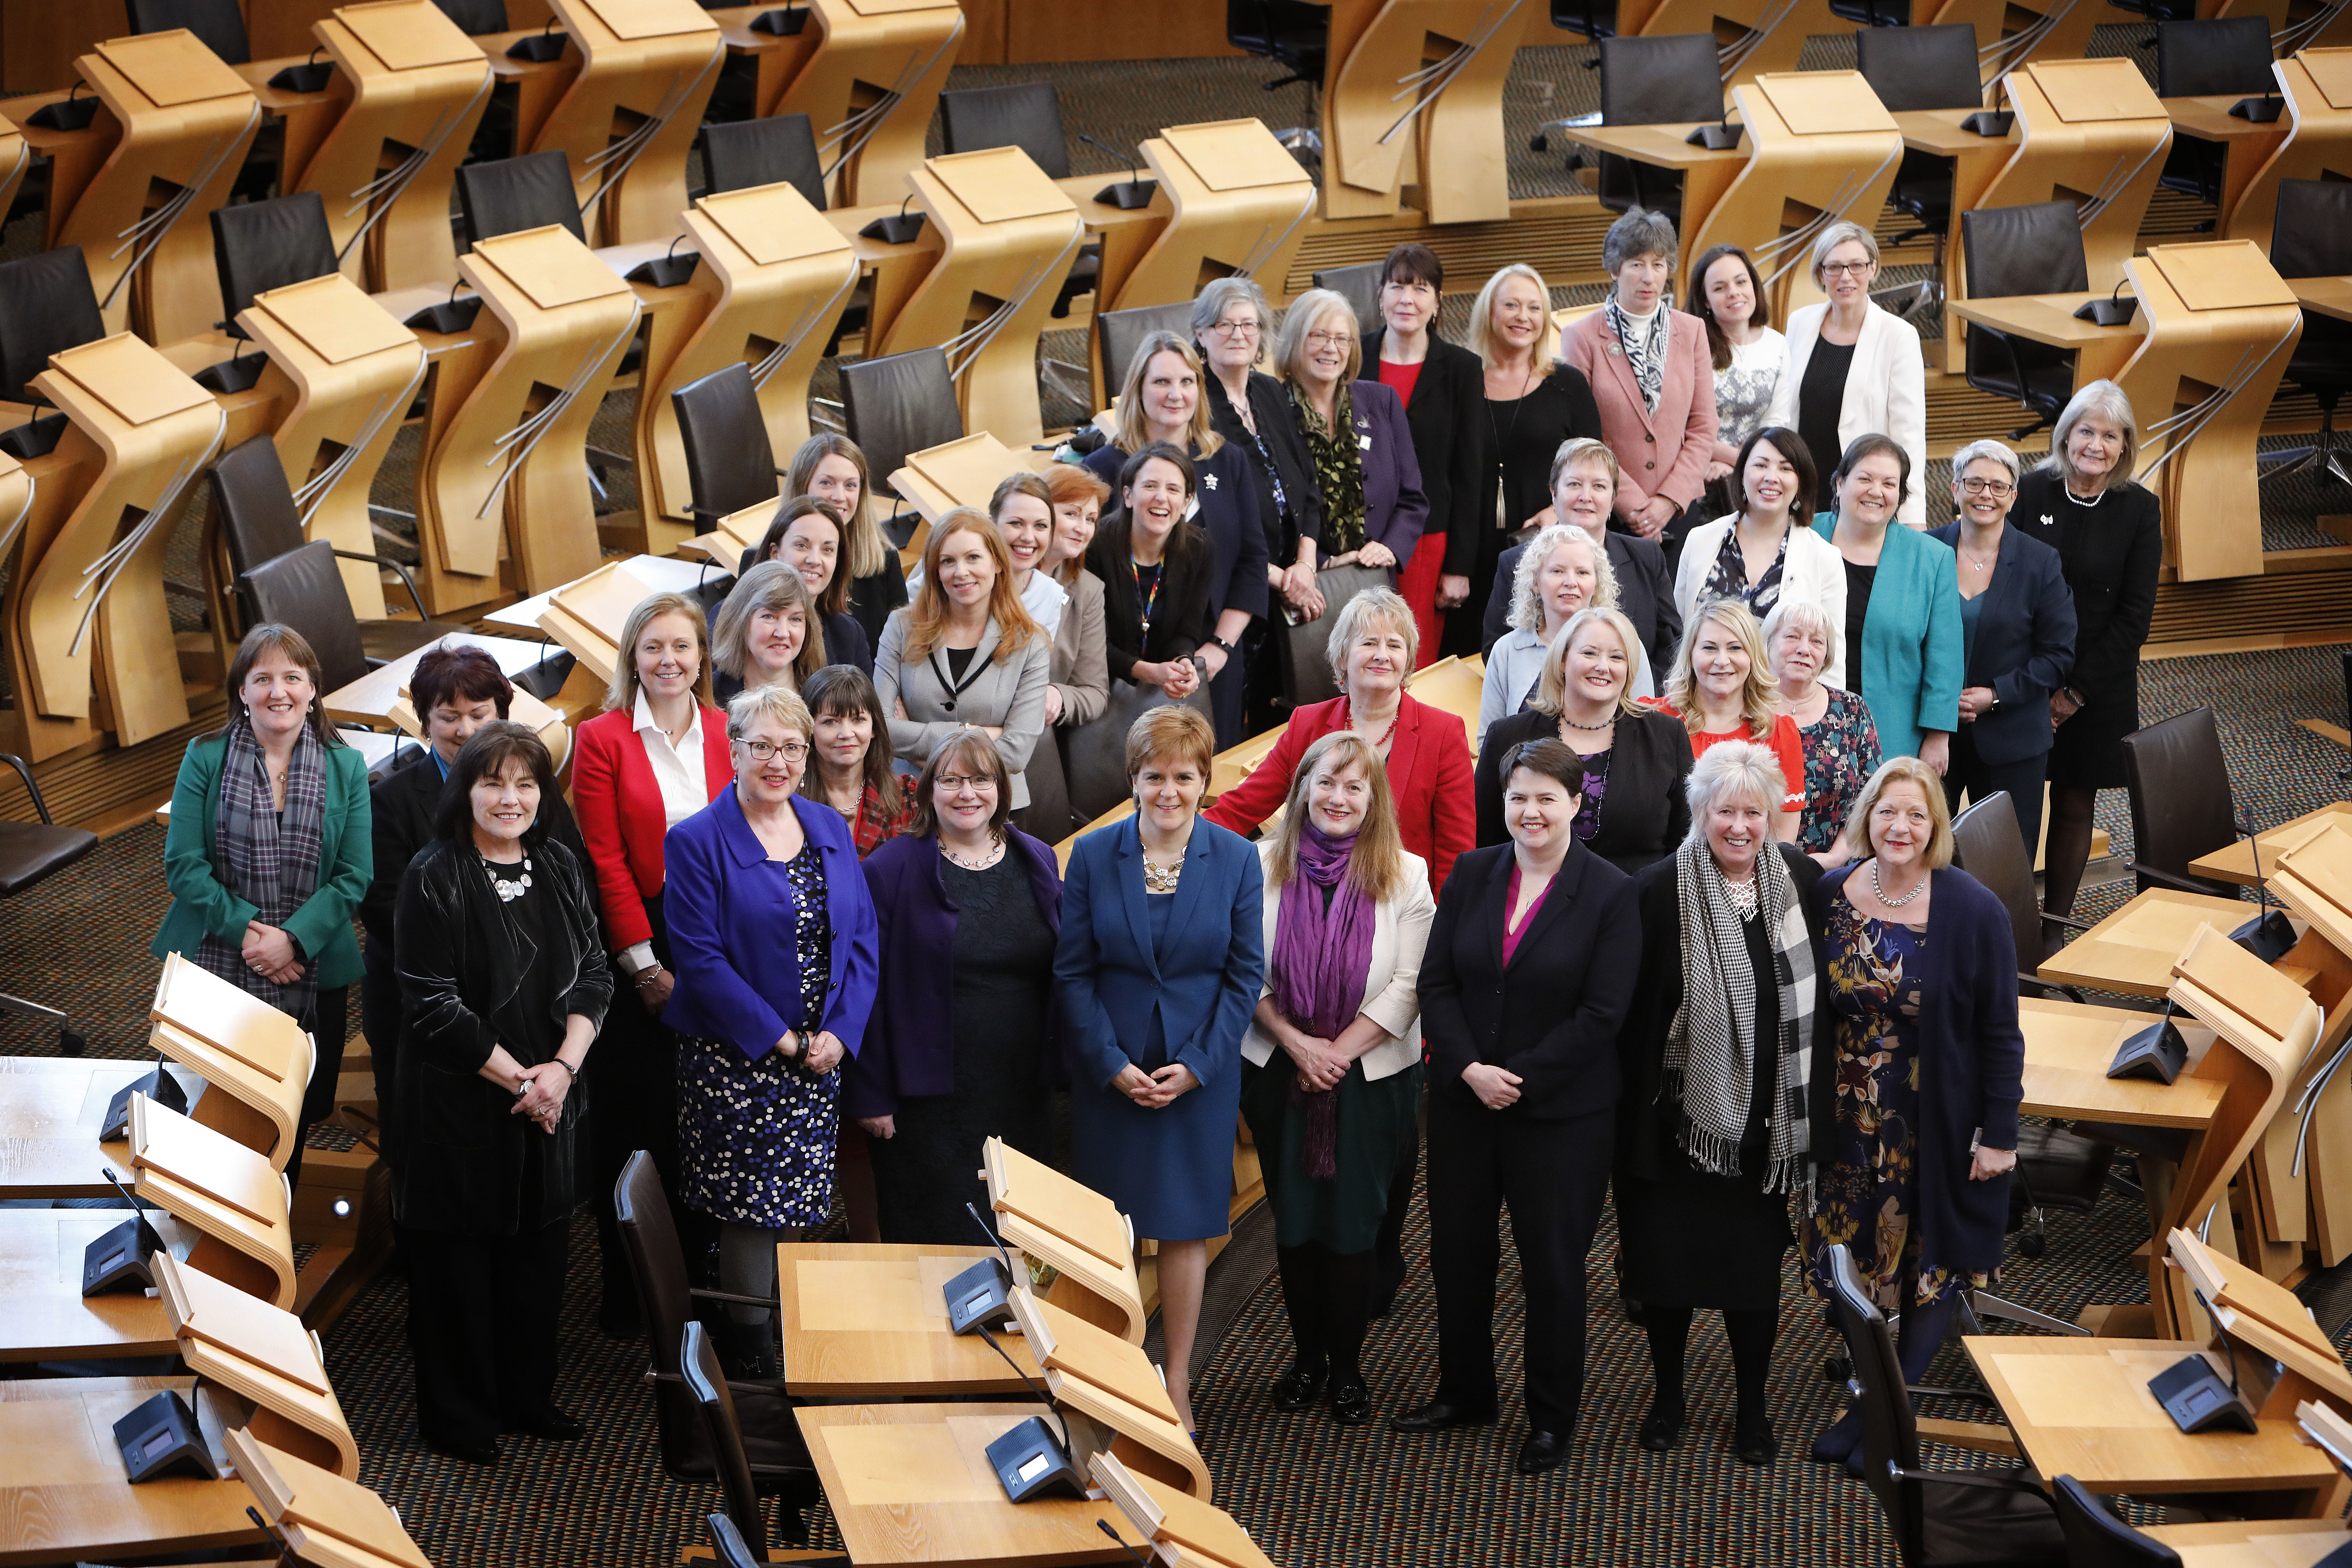 MSPs_Celebrate_100_Years_of_Votes_for_Women.jpg